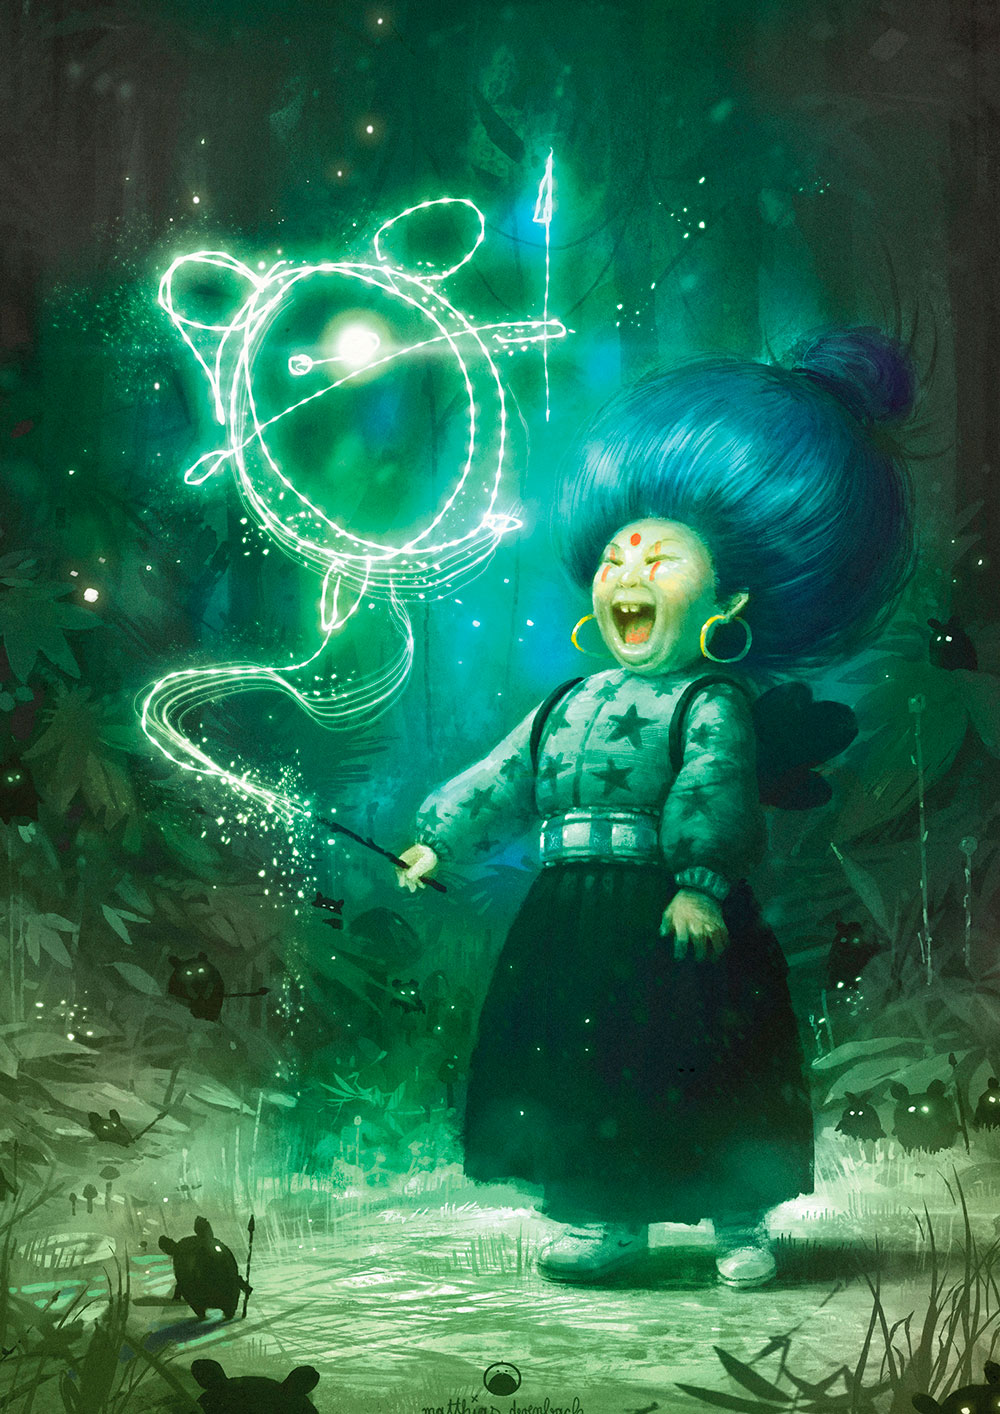 Digital artwork titled 'Crazy Witch'. Drawing of a laughing witch, standing in the forest and tracing the little creature in front of her with her magic wand in the air. Green tones create a mystical mood - by Matthias Derenbach